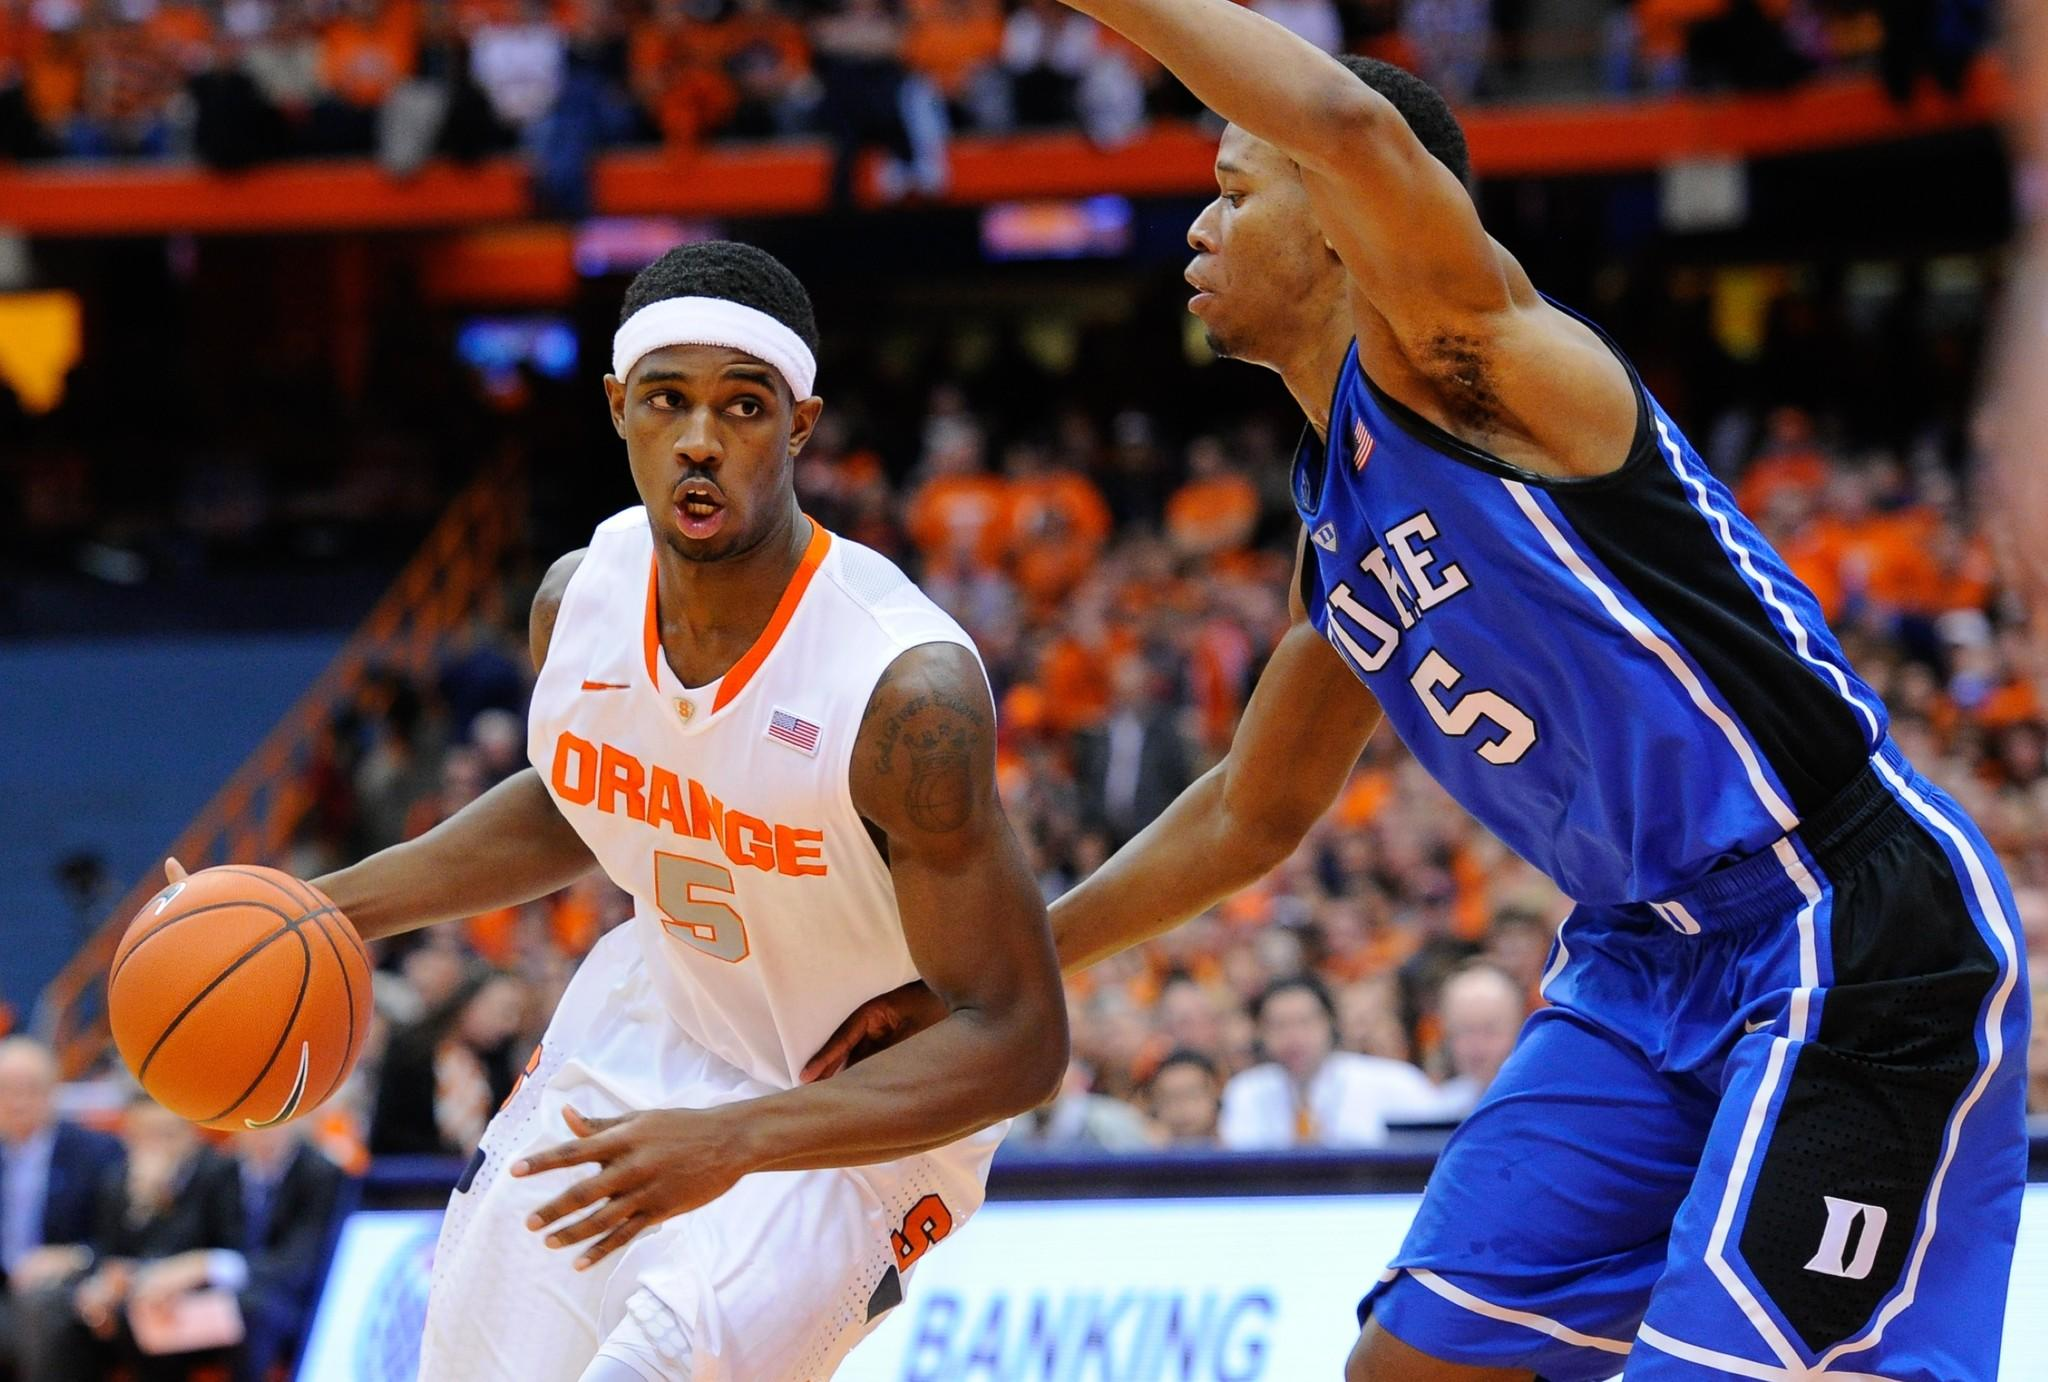 Forward C.J. Fair (City) keyed a Syracuse win over visiting Duke on Saturday night.